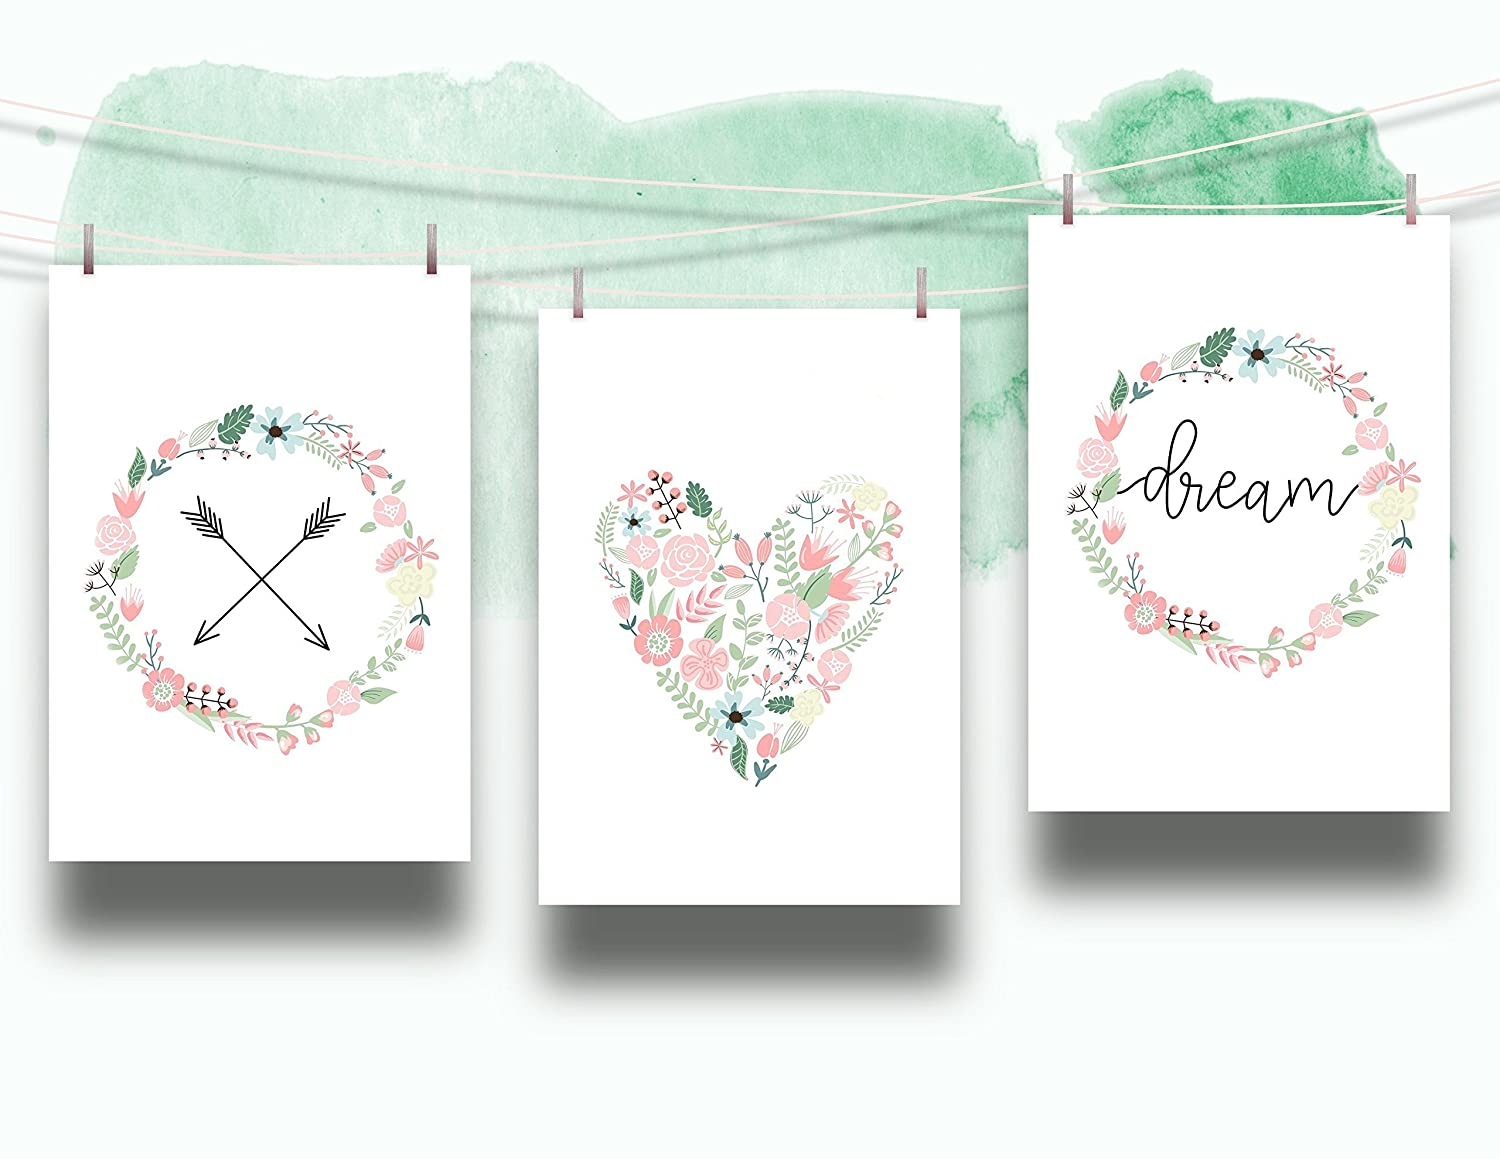 Set of 3 Floral Dream Nursery Cardstock Prints - 8.5 x11 Arrow, Heart and Pastel Floral Wreath Dream